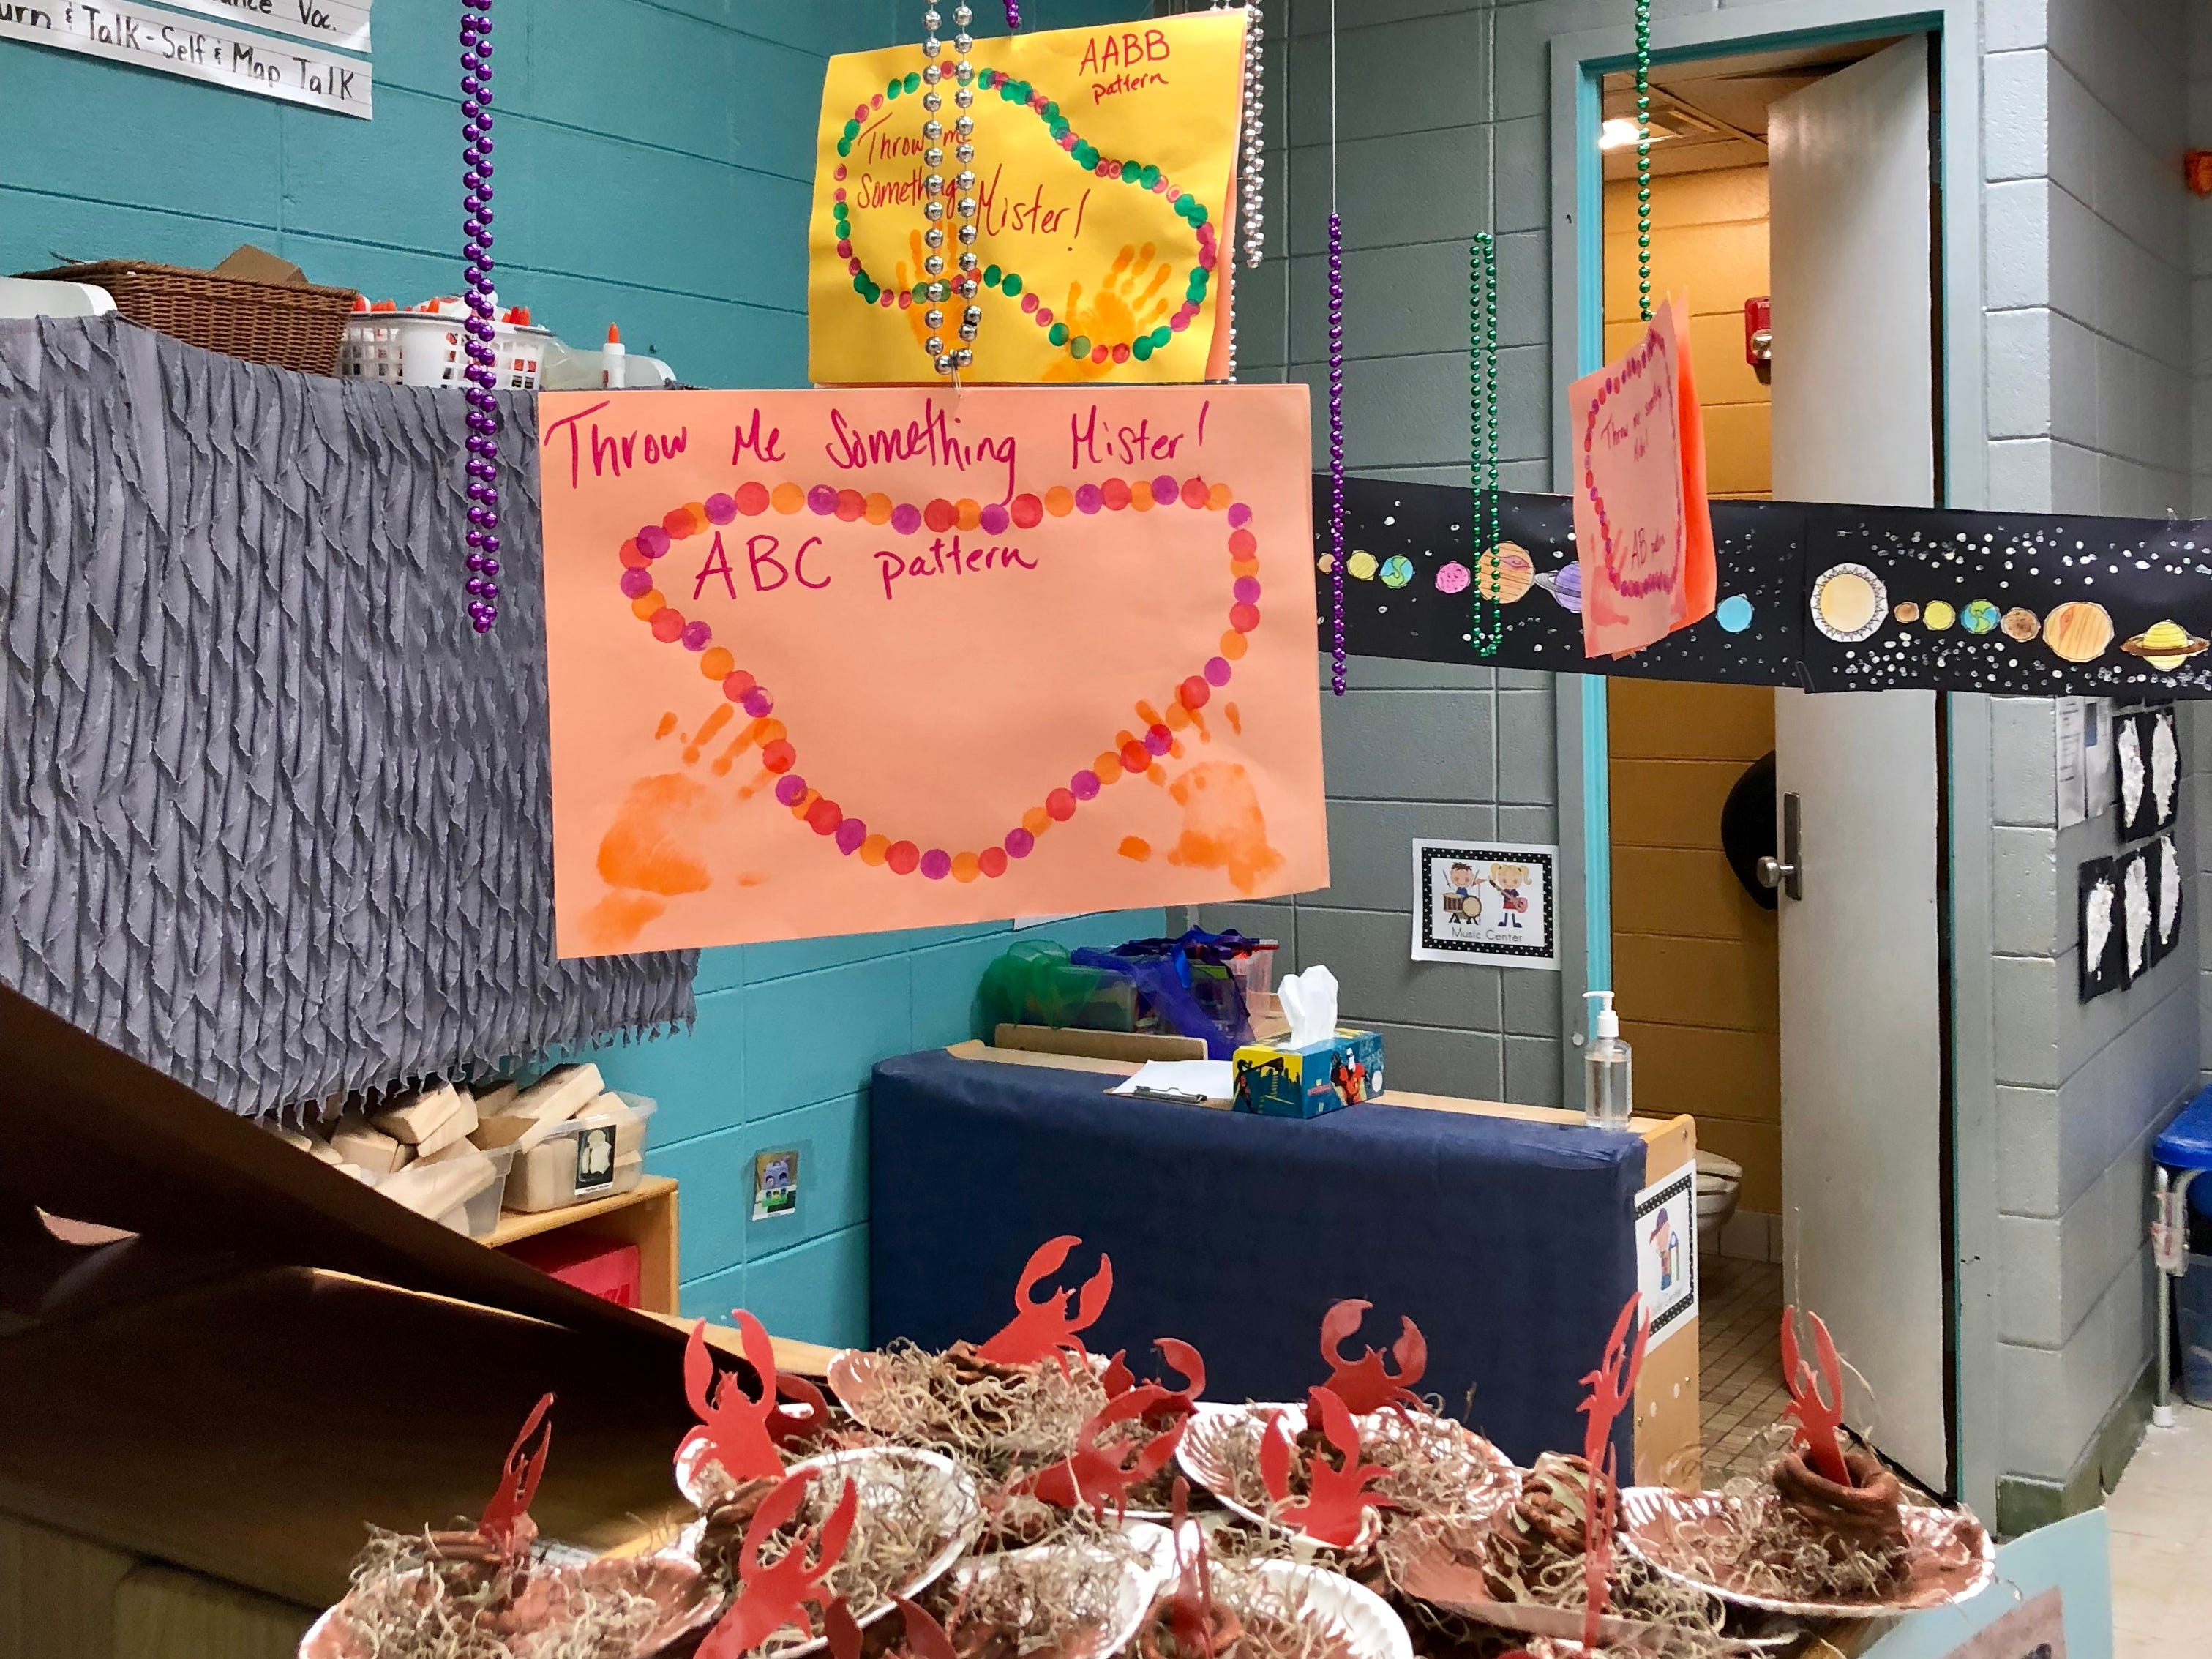 Pre-K students at Broadmoor Elementary worked on fine motor skills and patterns with class art projects related to Louisiana, like Mardi Gras beads and crawfish holes.